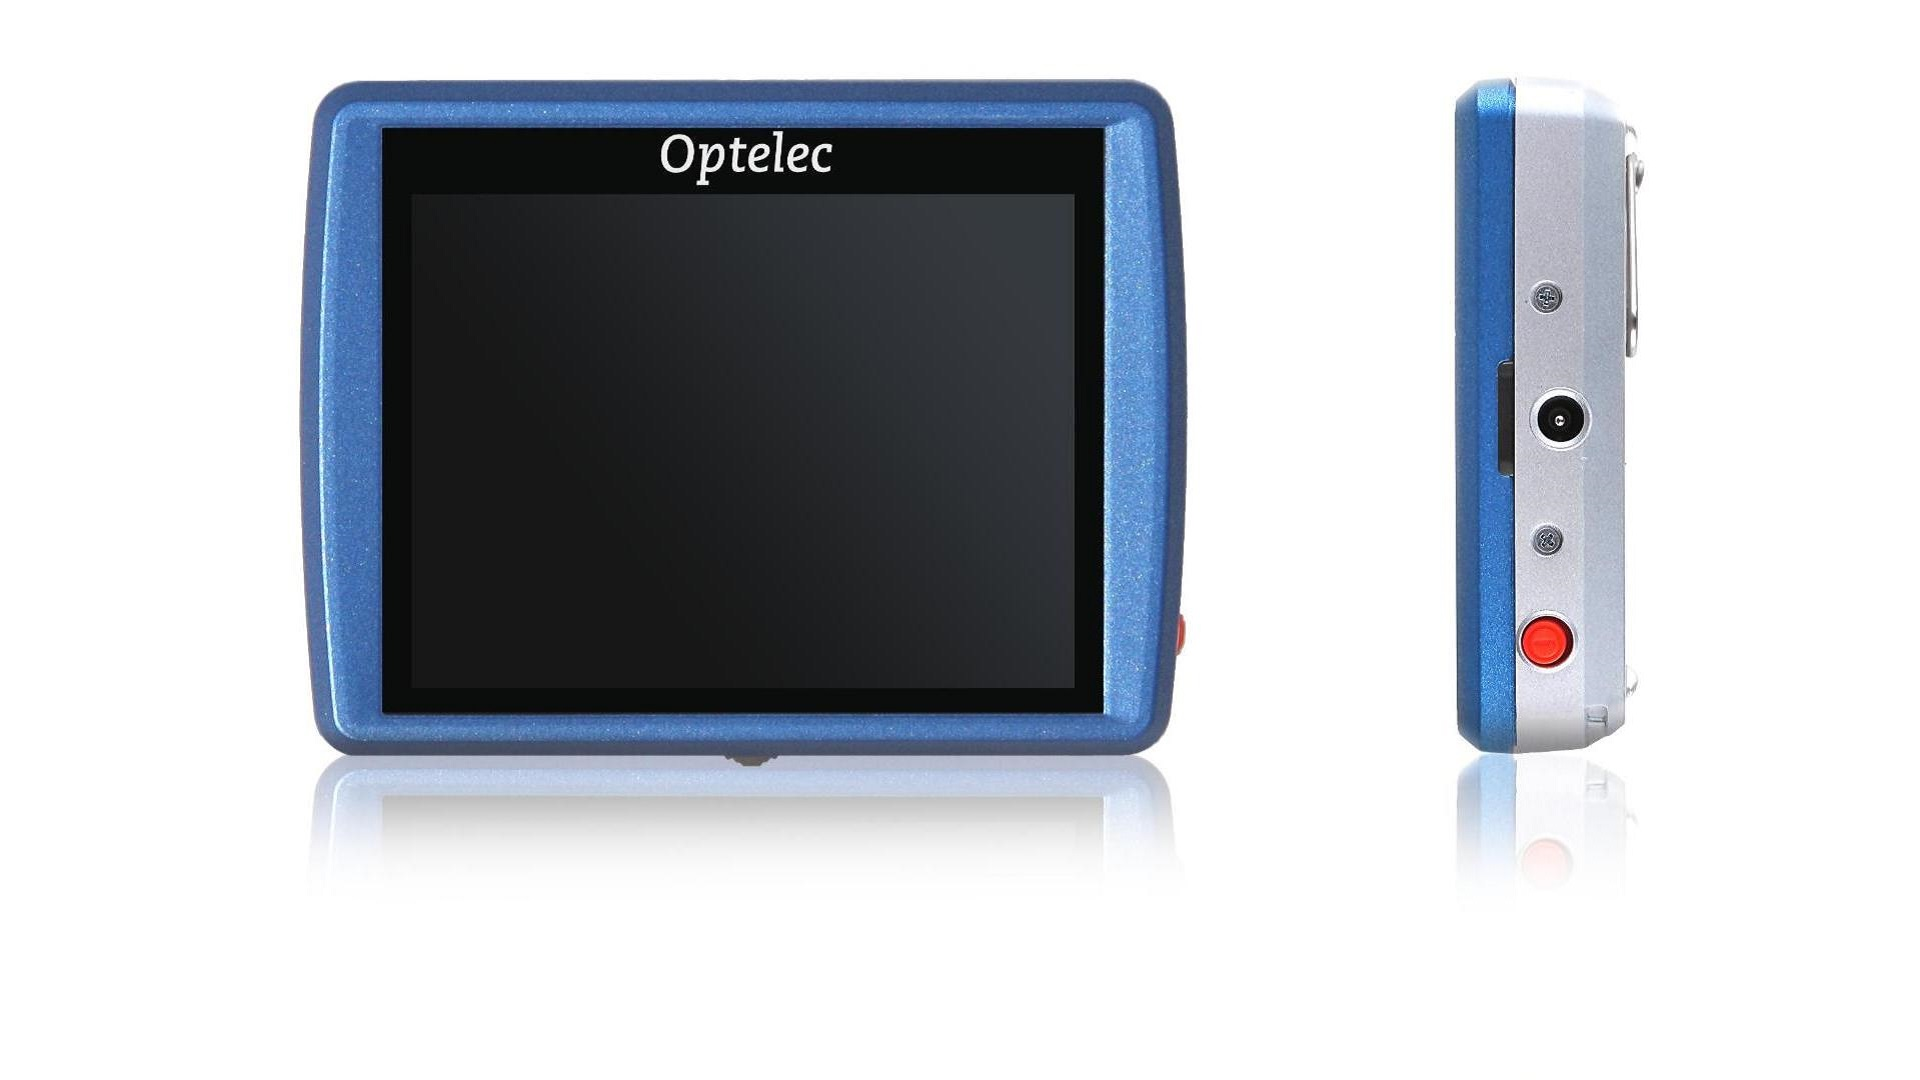 "The Compact Mini is a tiny, 3.5"" display. It is about two centimeters thick. On the bottom side (not on the front with the same orientation as the display) is an adjustment wheel. On the left side there are two near-hidden screws. On the top is a pill shaped button with a camera icon physically embedded in. On the right side there is a red button near the top, and power plug in the center. There are two screw spots symmetrical to the ones on the left."